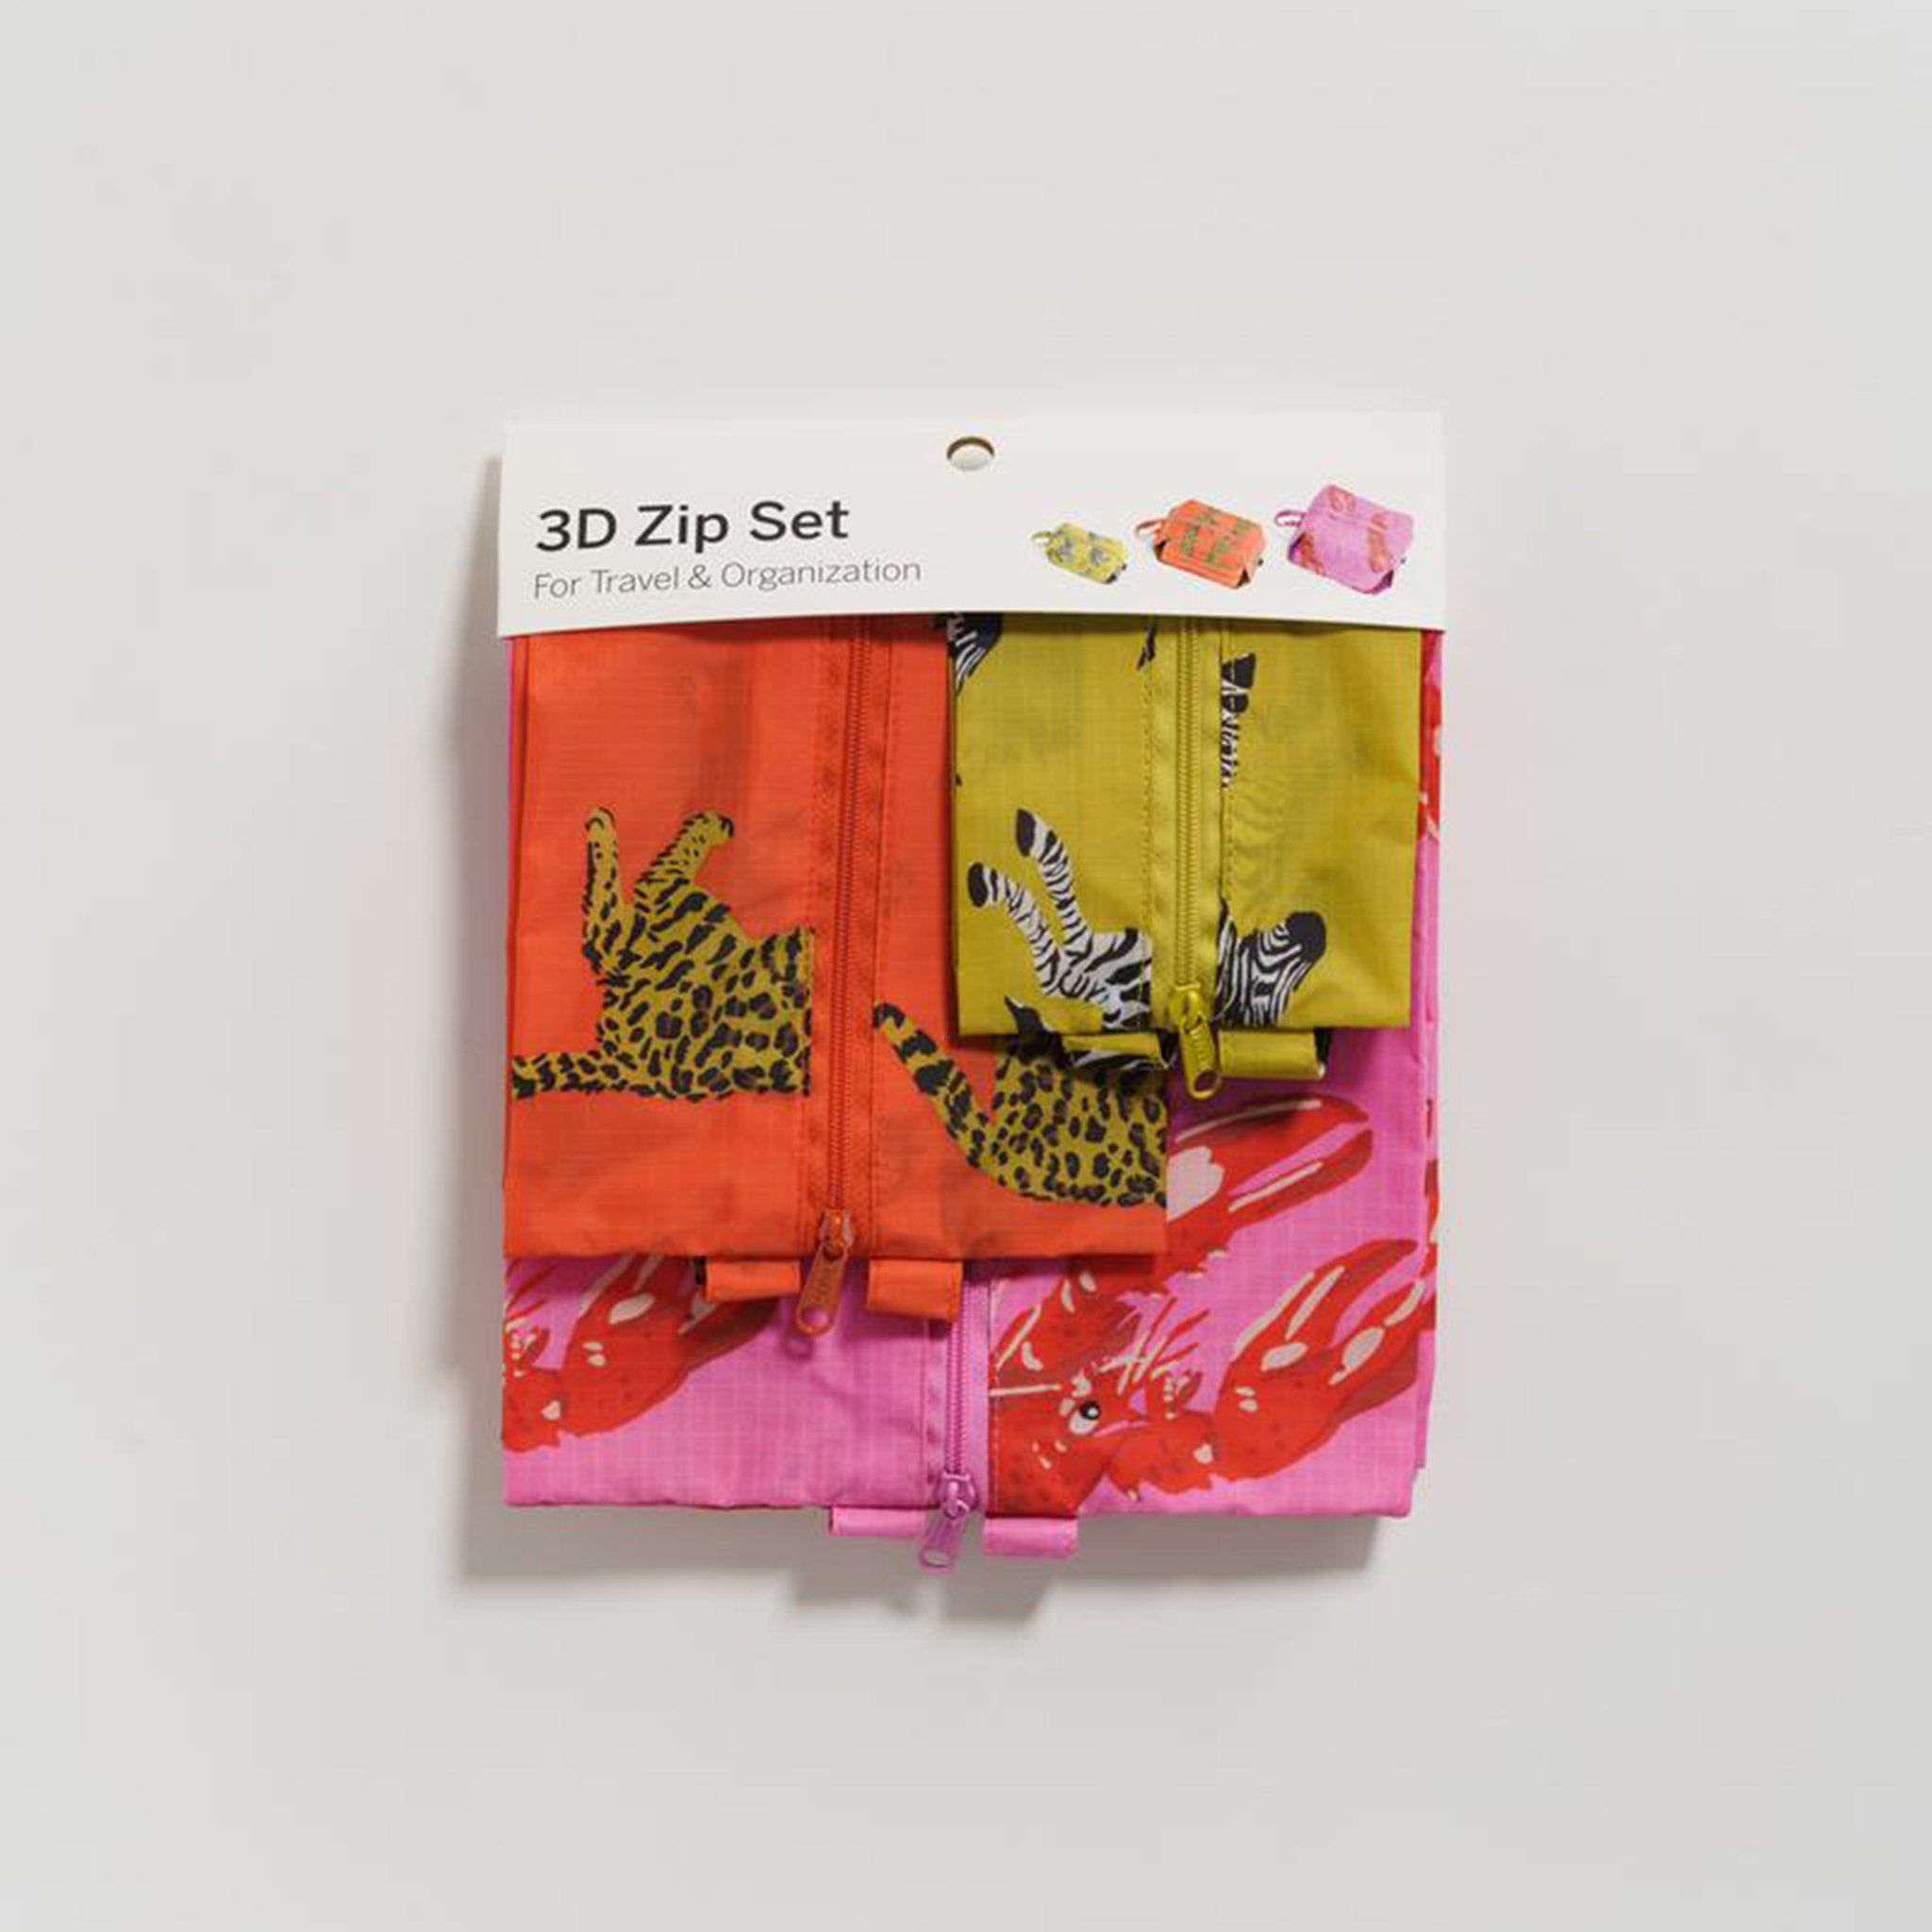 3D Zip Set - Fancy Animal